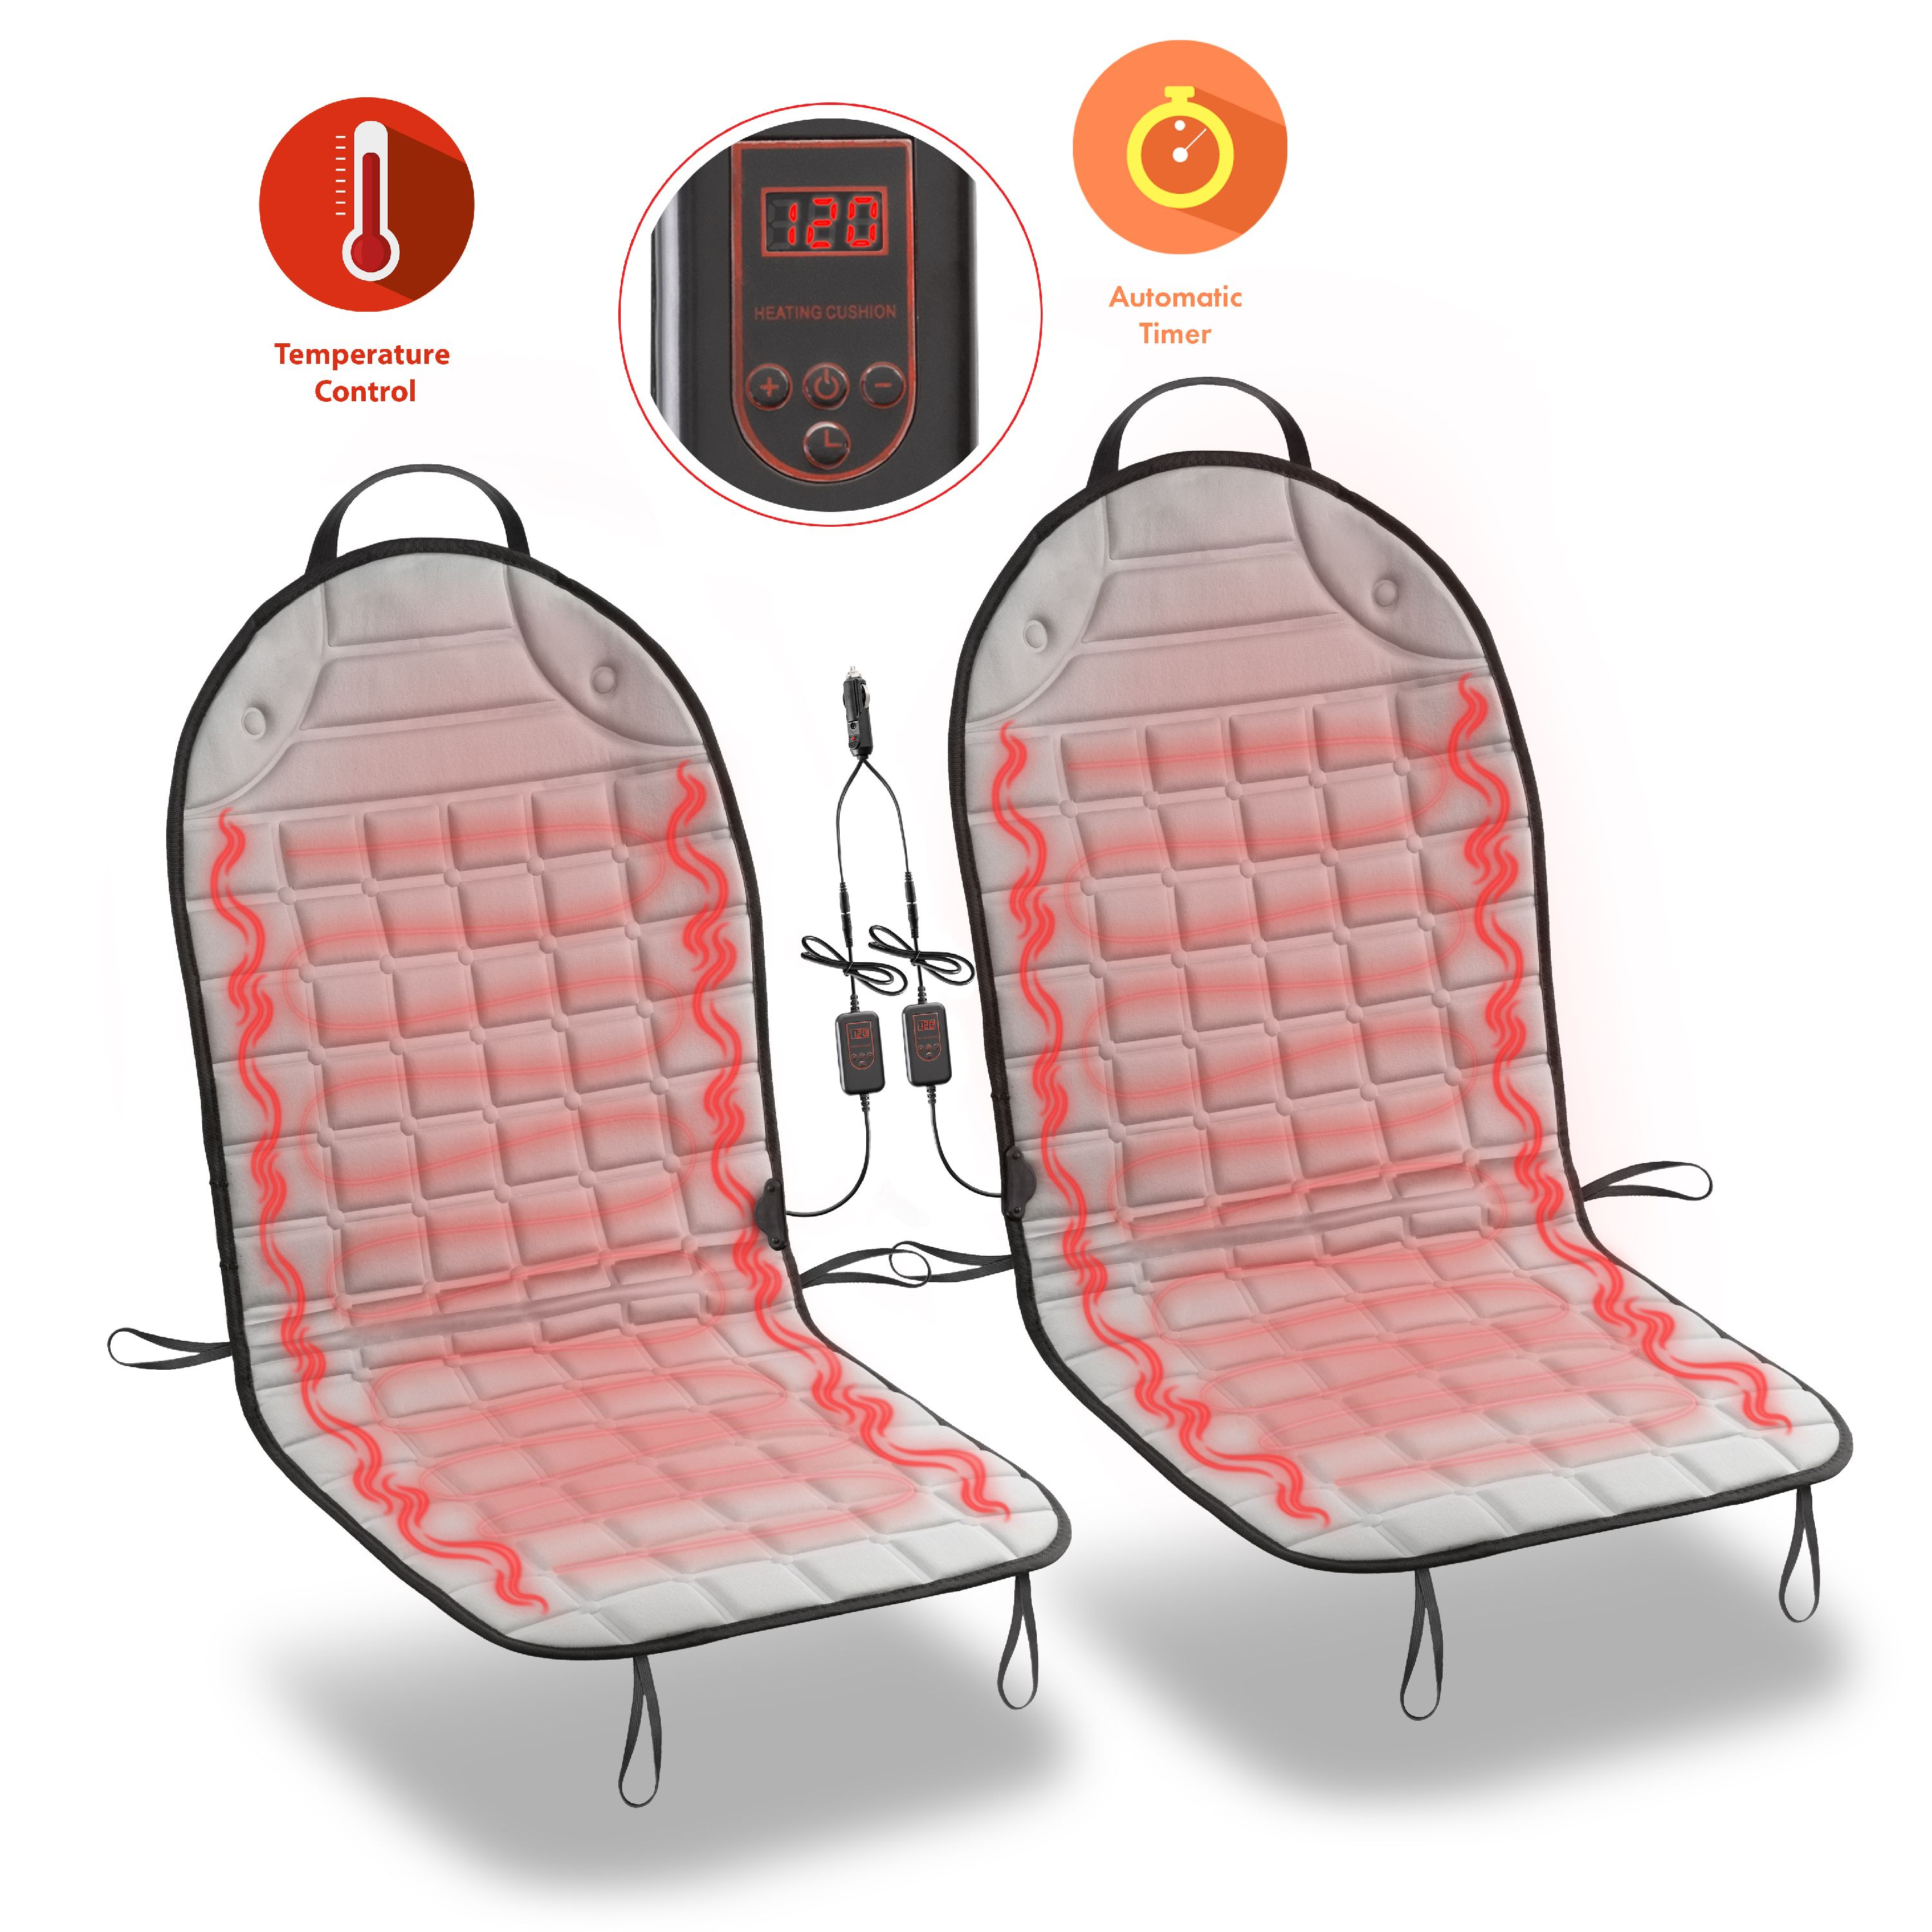 Zone Tech Car Heated Seat Cover Cushion Hot Warmer  2 Piece Set 12V Heating Warmer Pad Hot Gray Cover Perfect for Cold Weather and Winter Driving